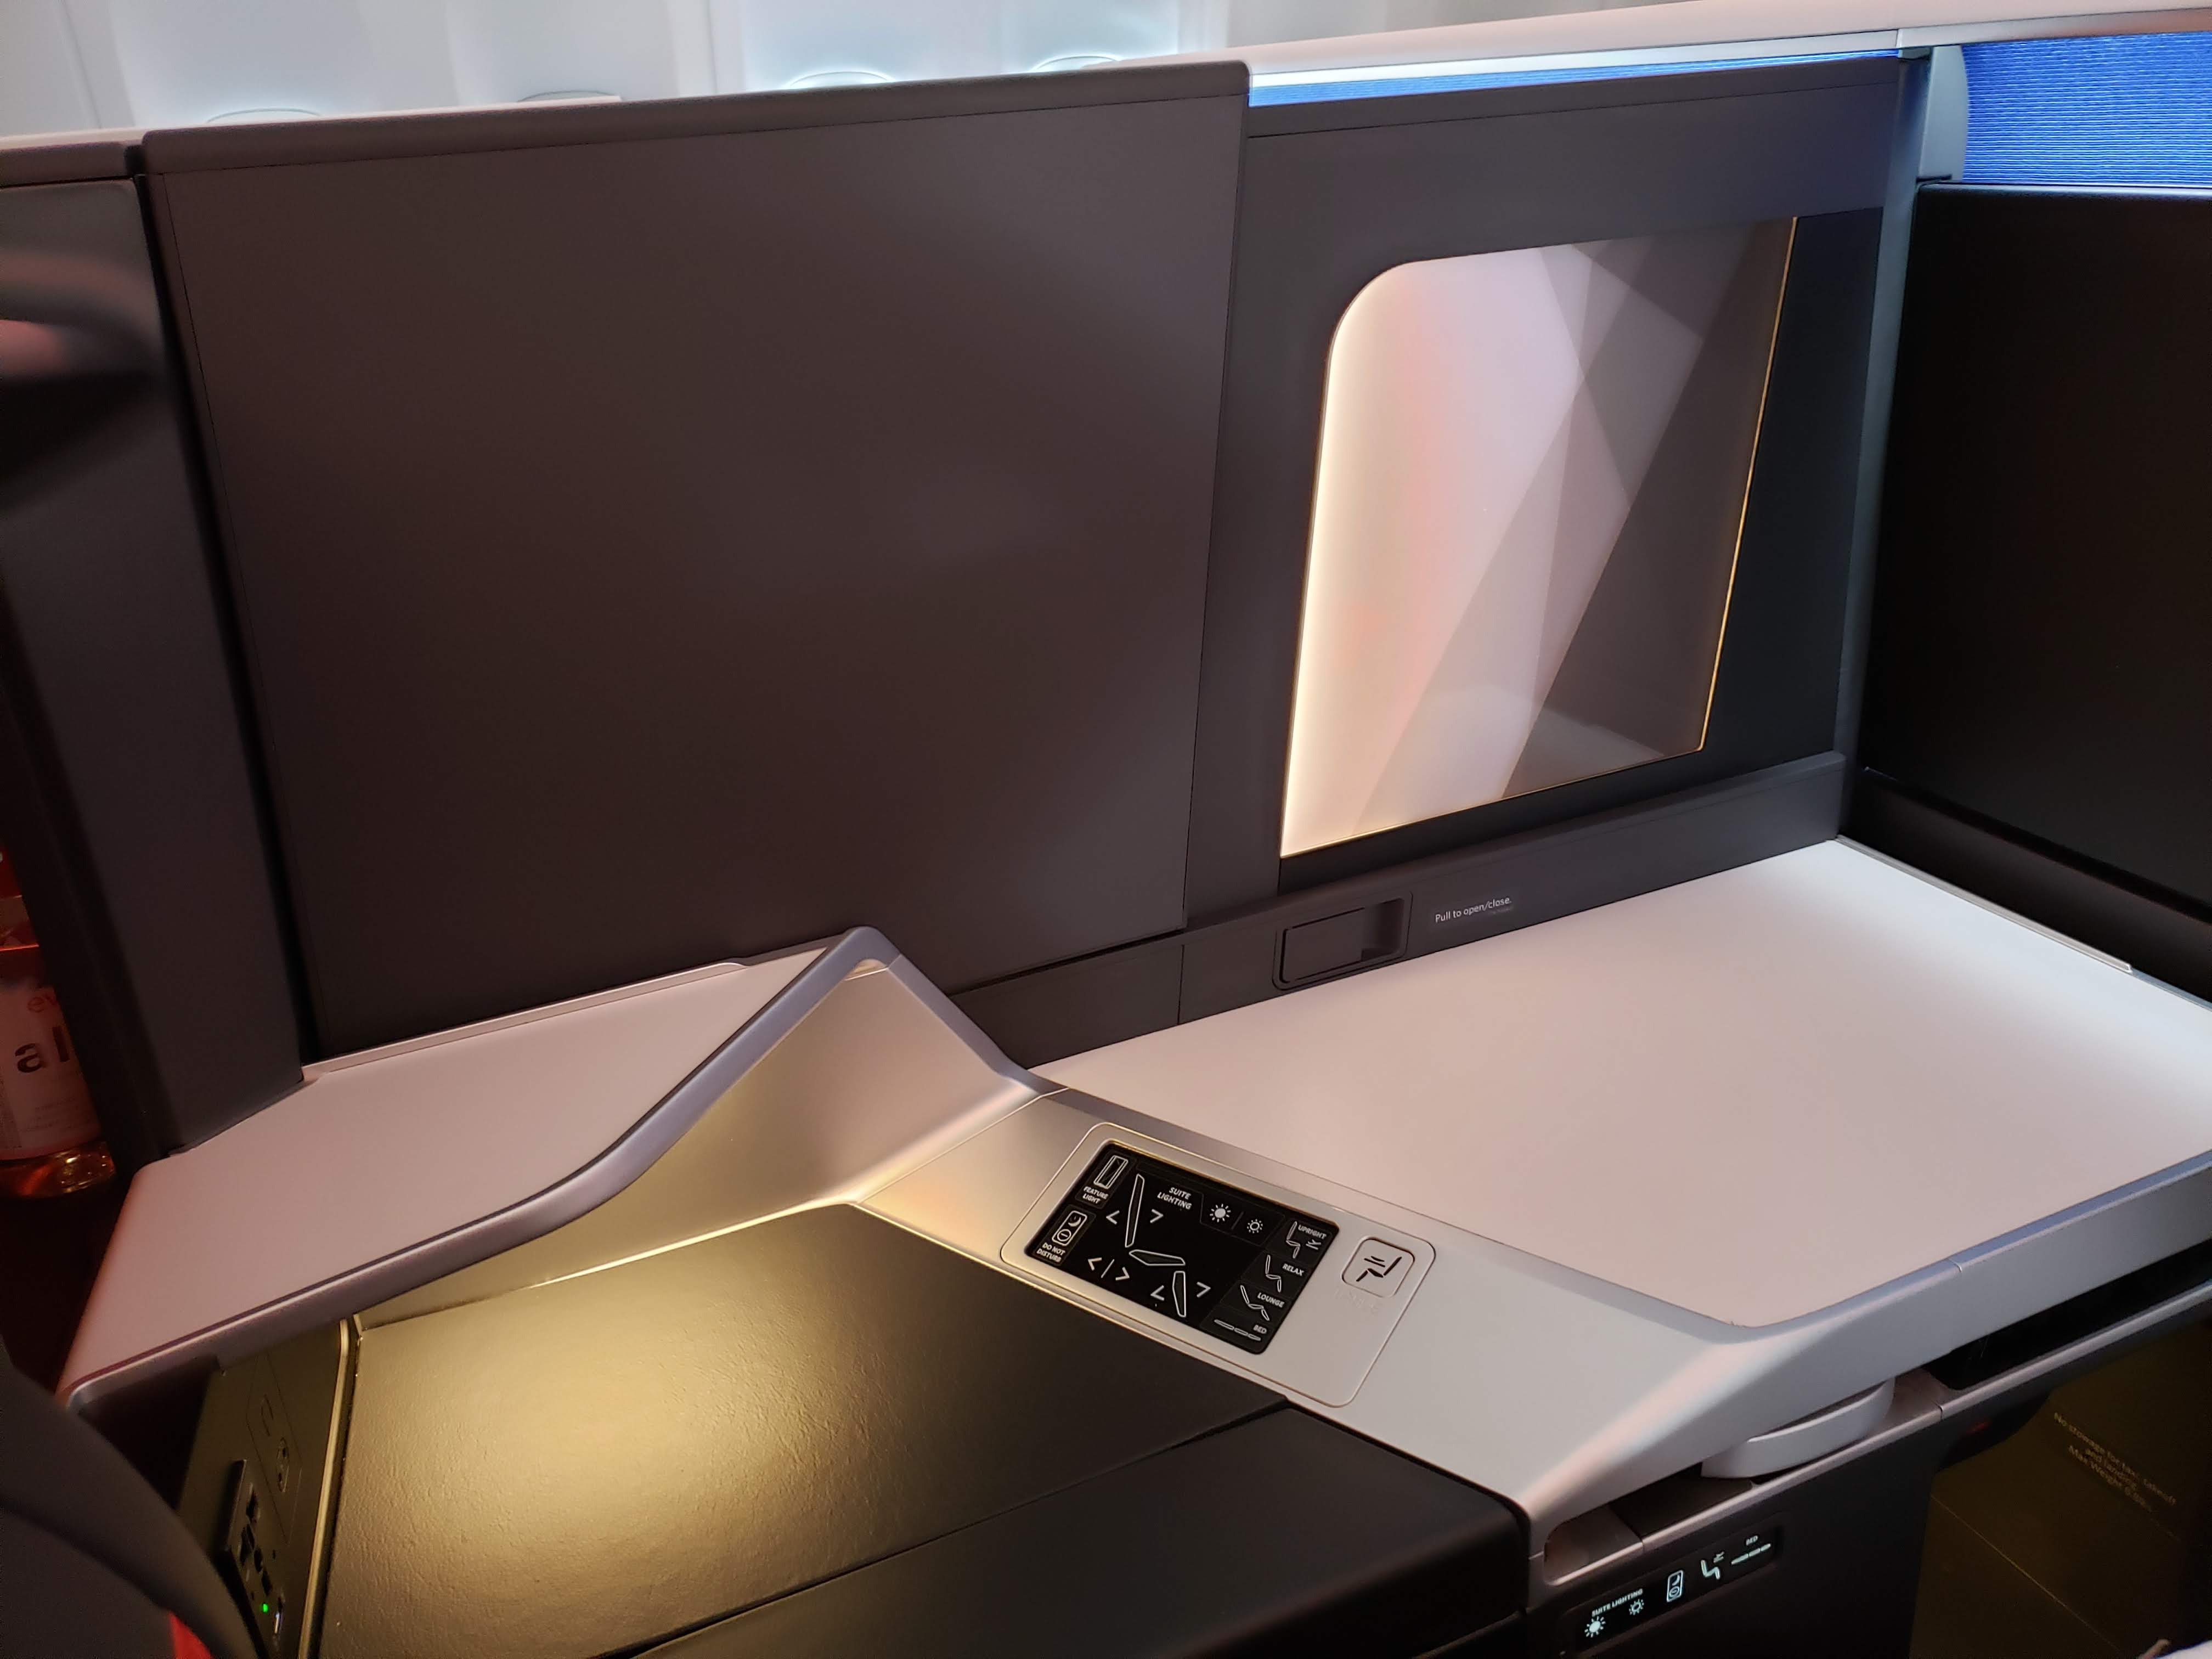 Delta One Suites Desk Storage Space - Late By Lattes